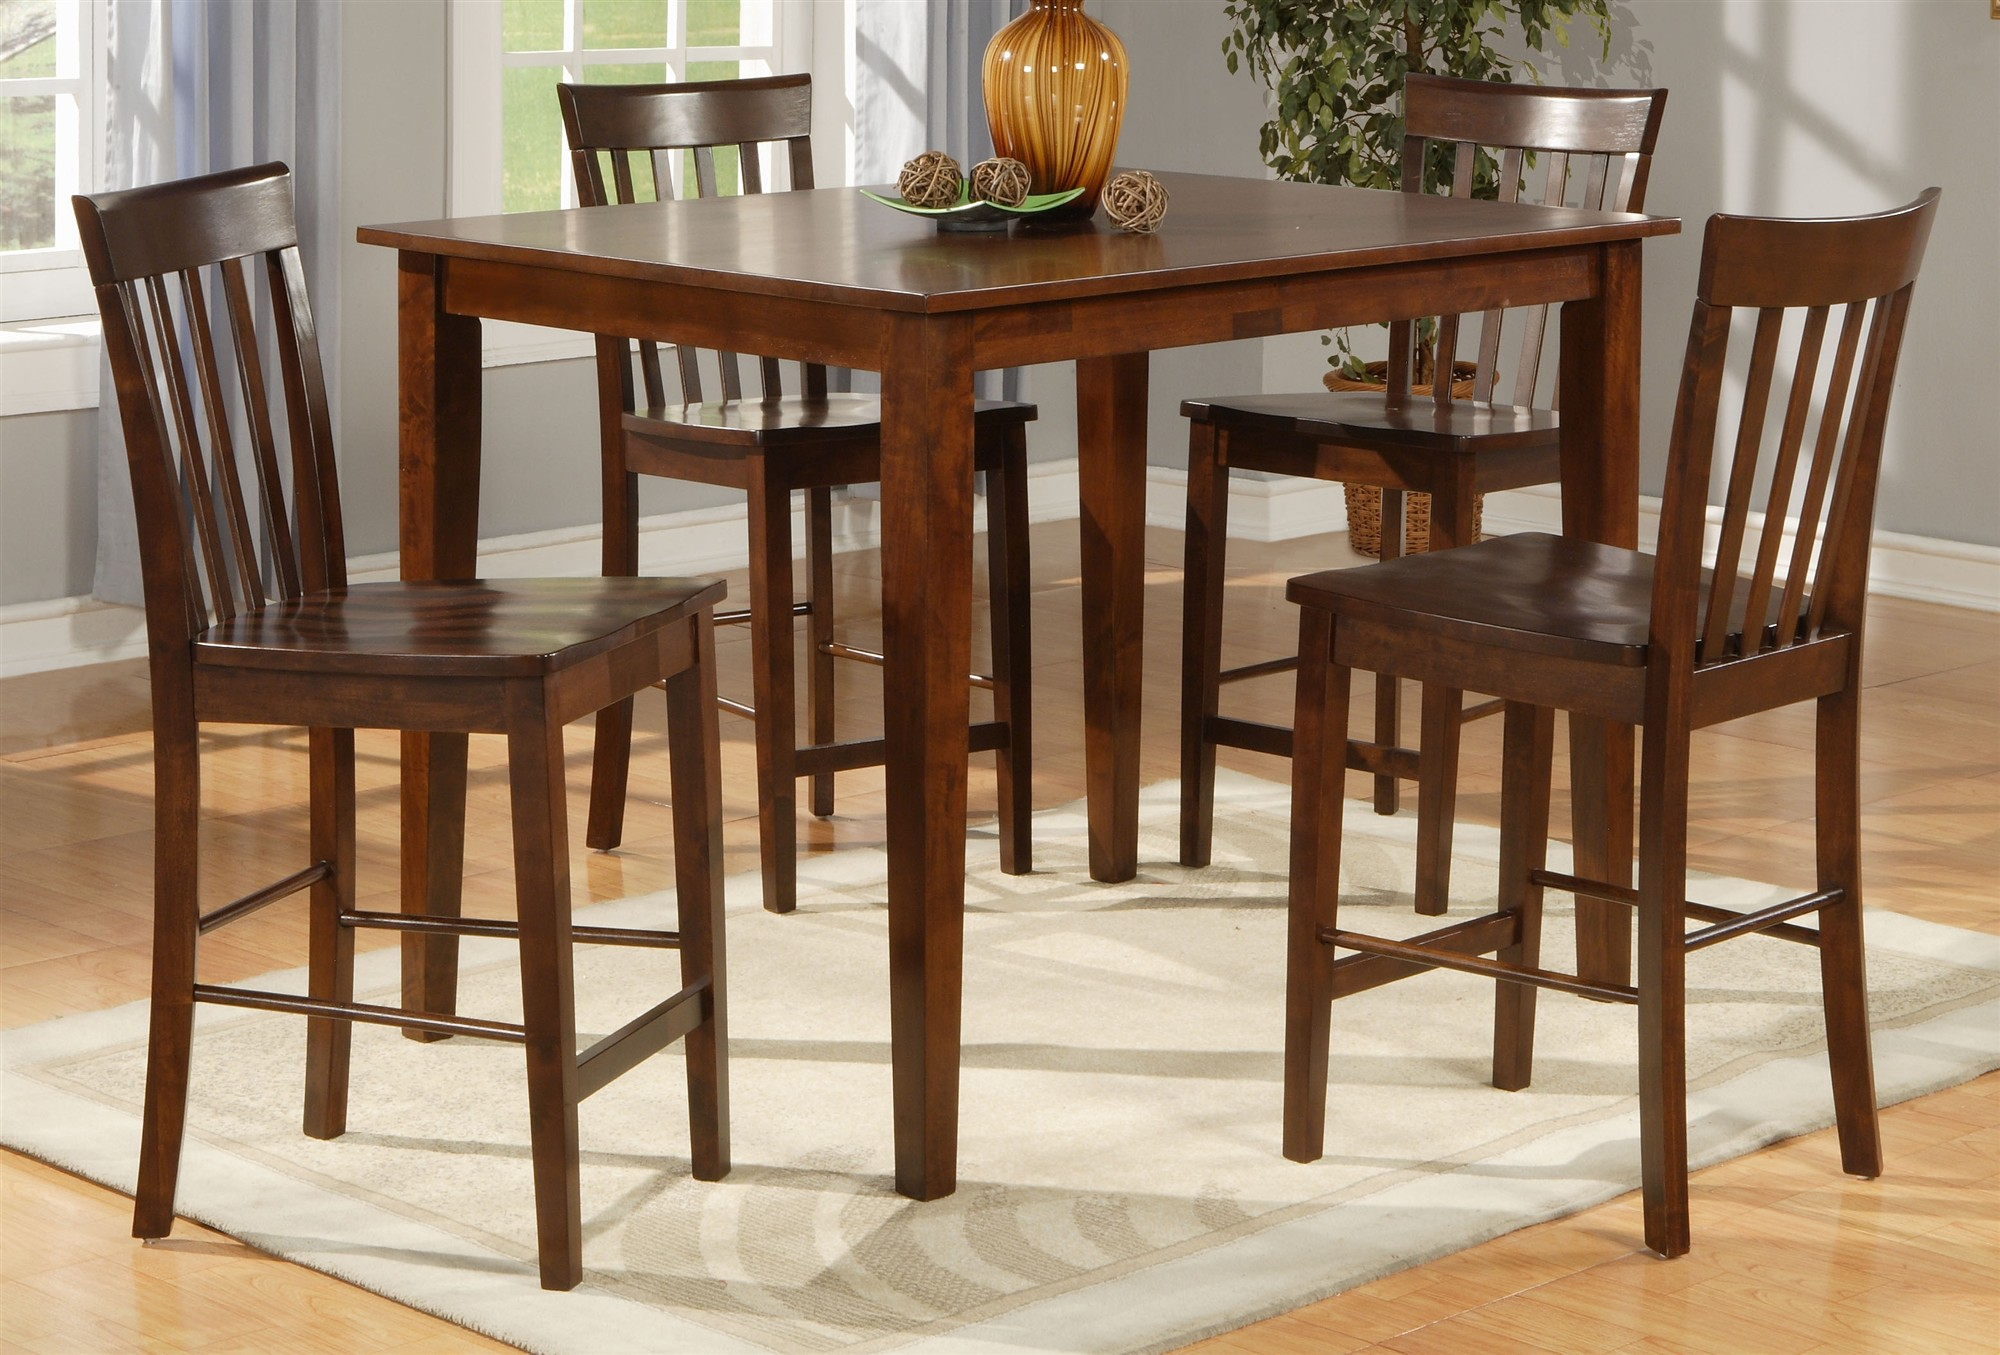 Dining Room Table And Chairs Square Dining Table For 4 Homesfeed